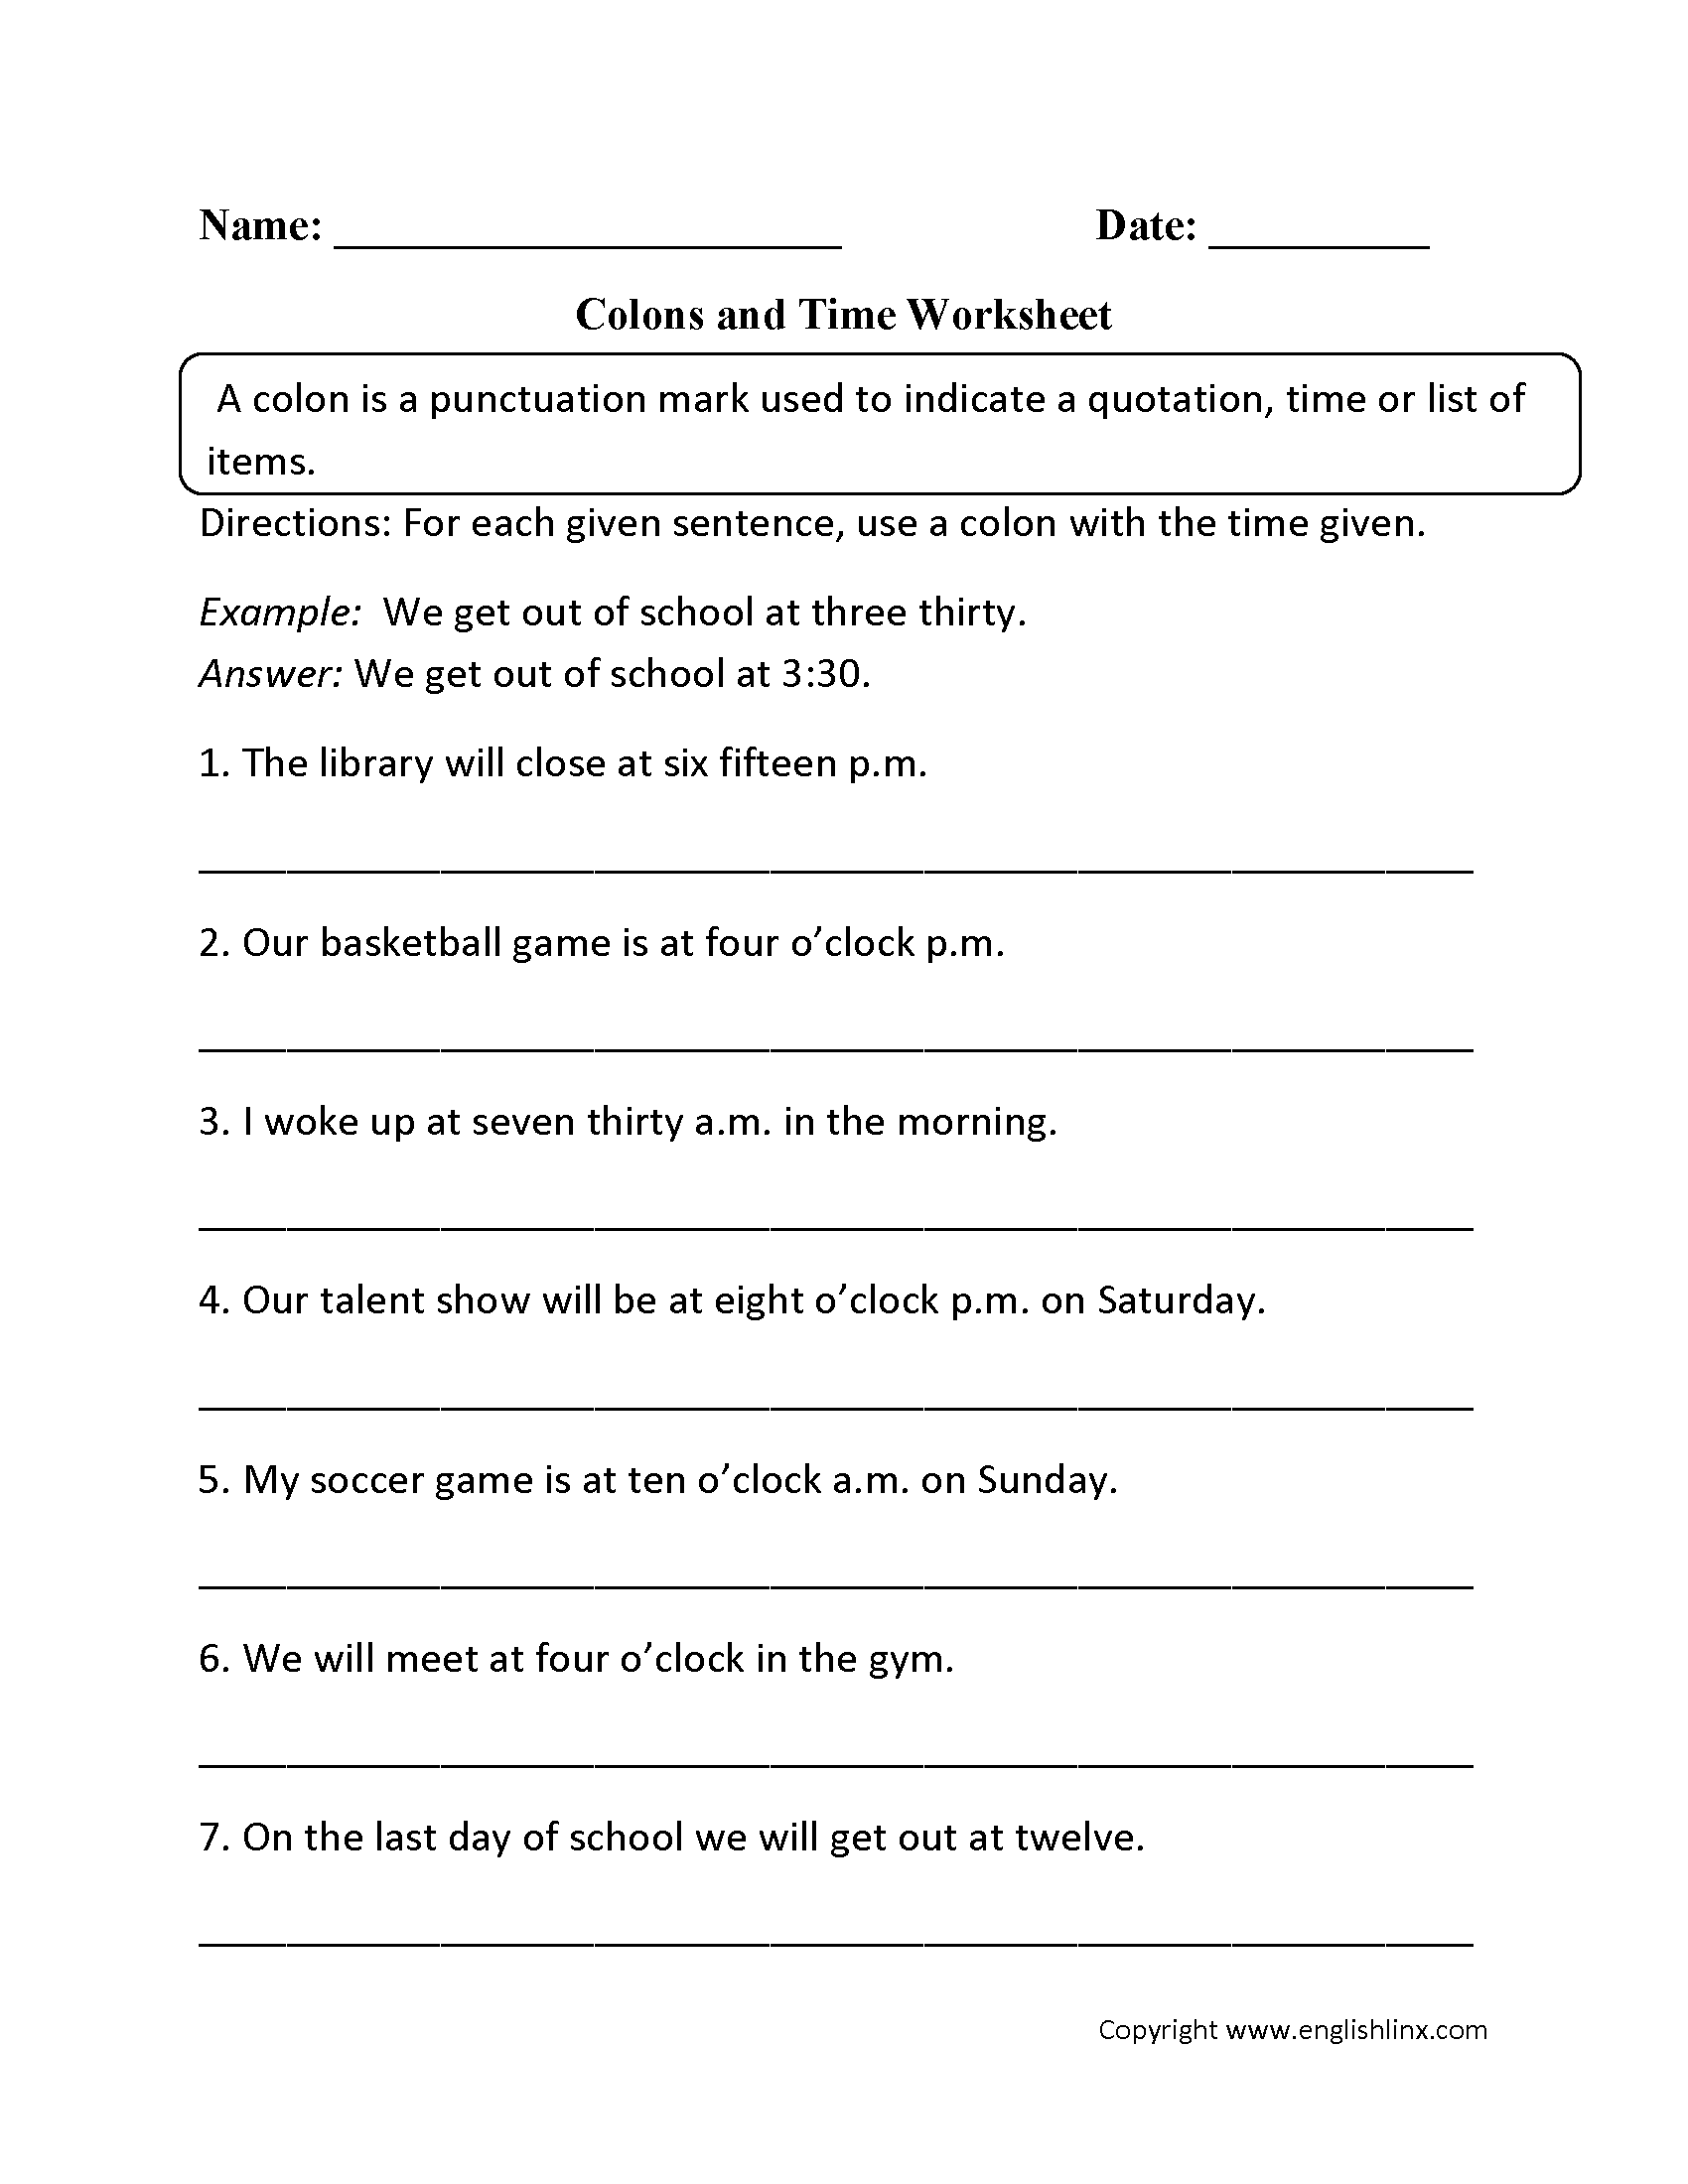 Worksheets Grammar Worksheets For High School punctuation worksheets colon worksheets